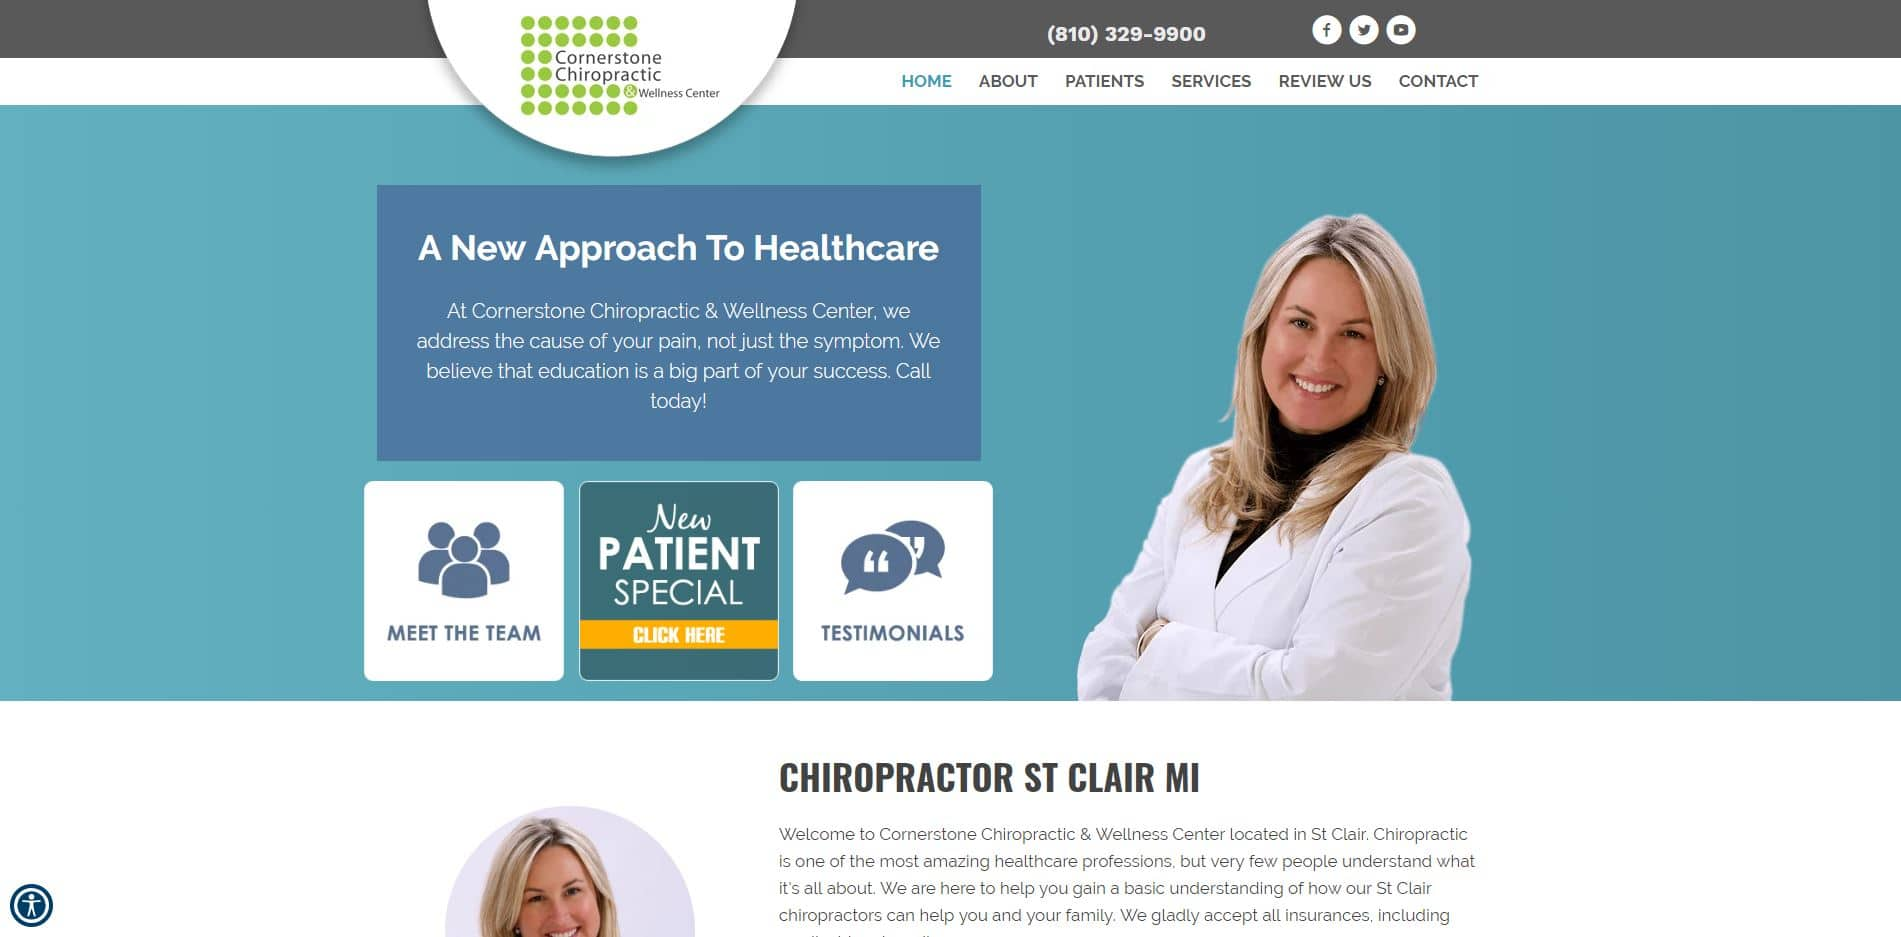 Chiropractor in St. Clair